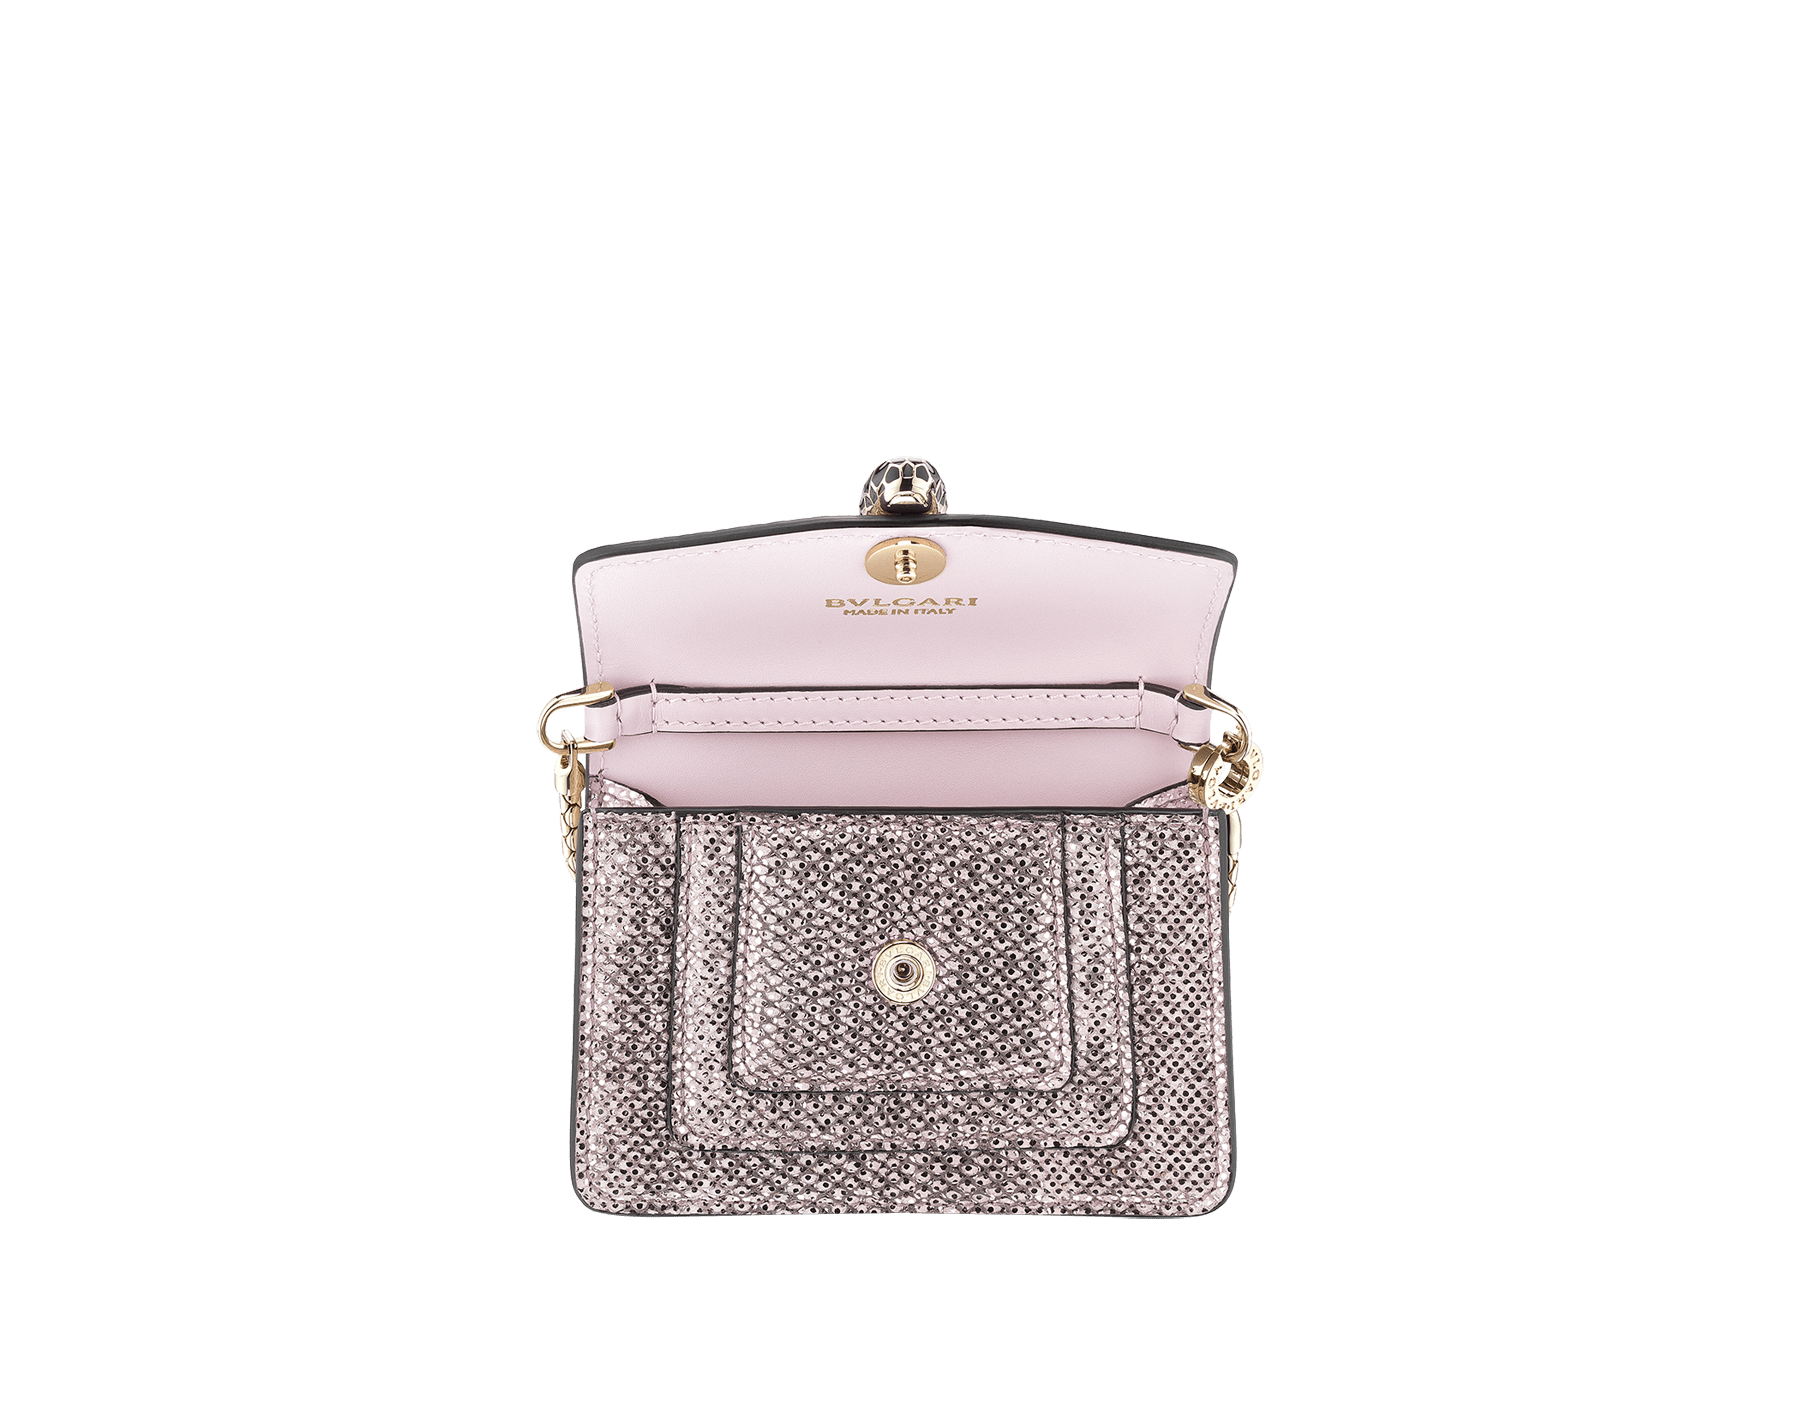 Serpenti Forever miniature bag charm in rosa di francia metallic karung skin, with black calf leather lining. Iconic brass light gold plated snakehead press stud closure enamelled in black and glitter rosa di francia, finished with black enamel eyes. 289067 image 2